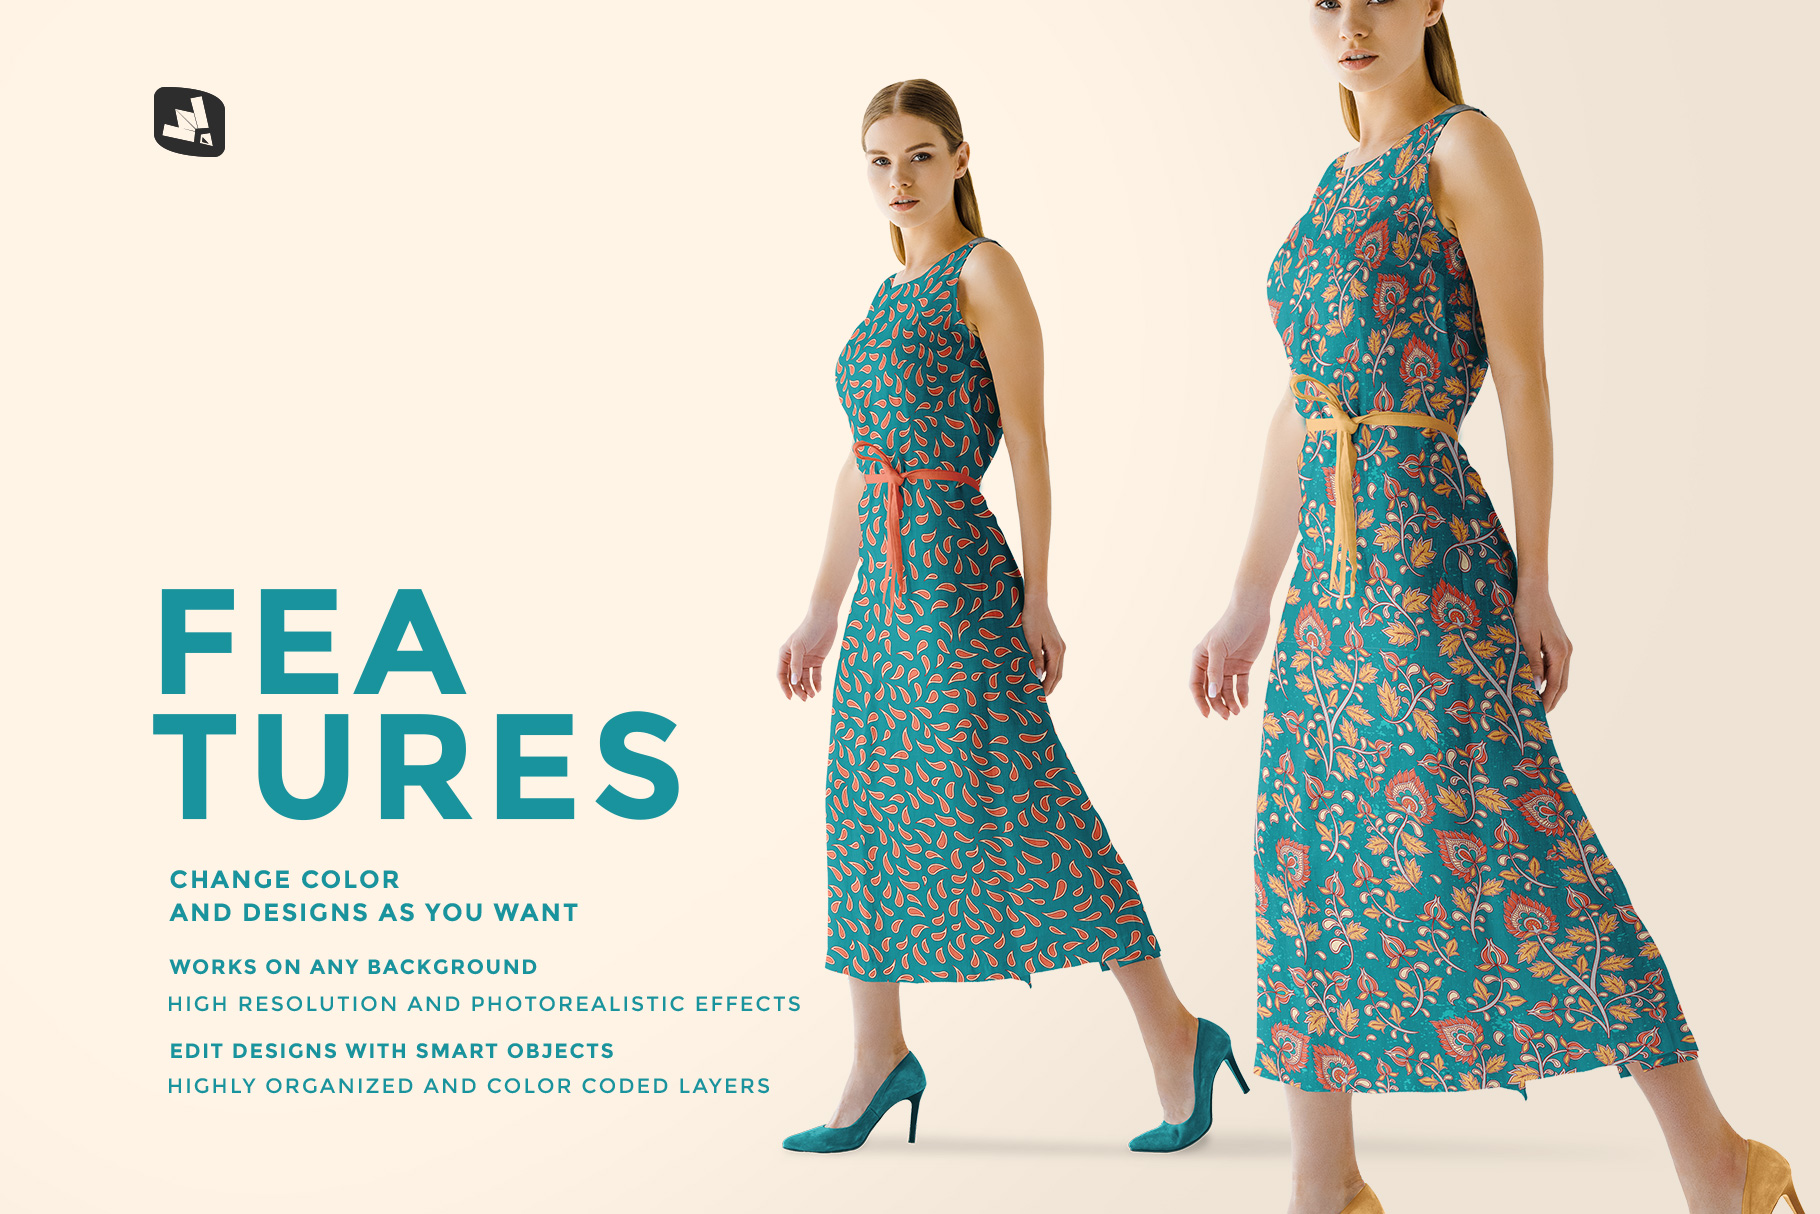 features of the women's summer dress mockup vol.3